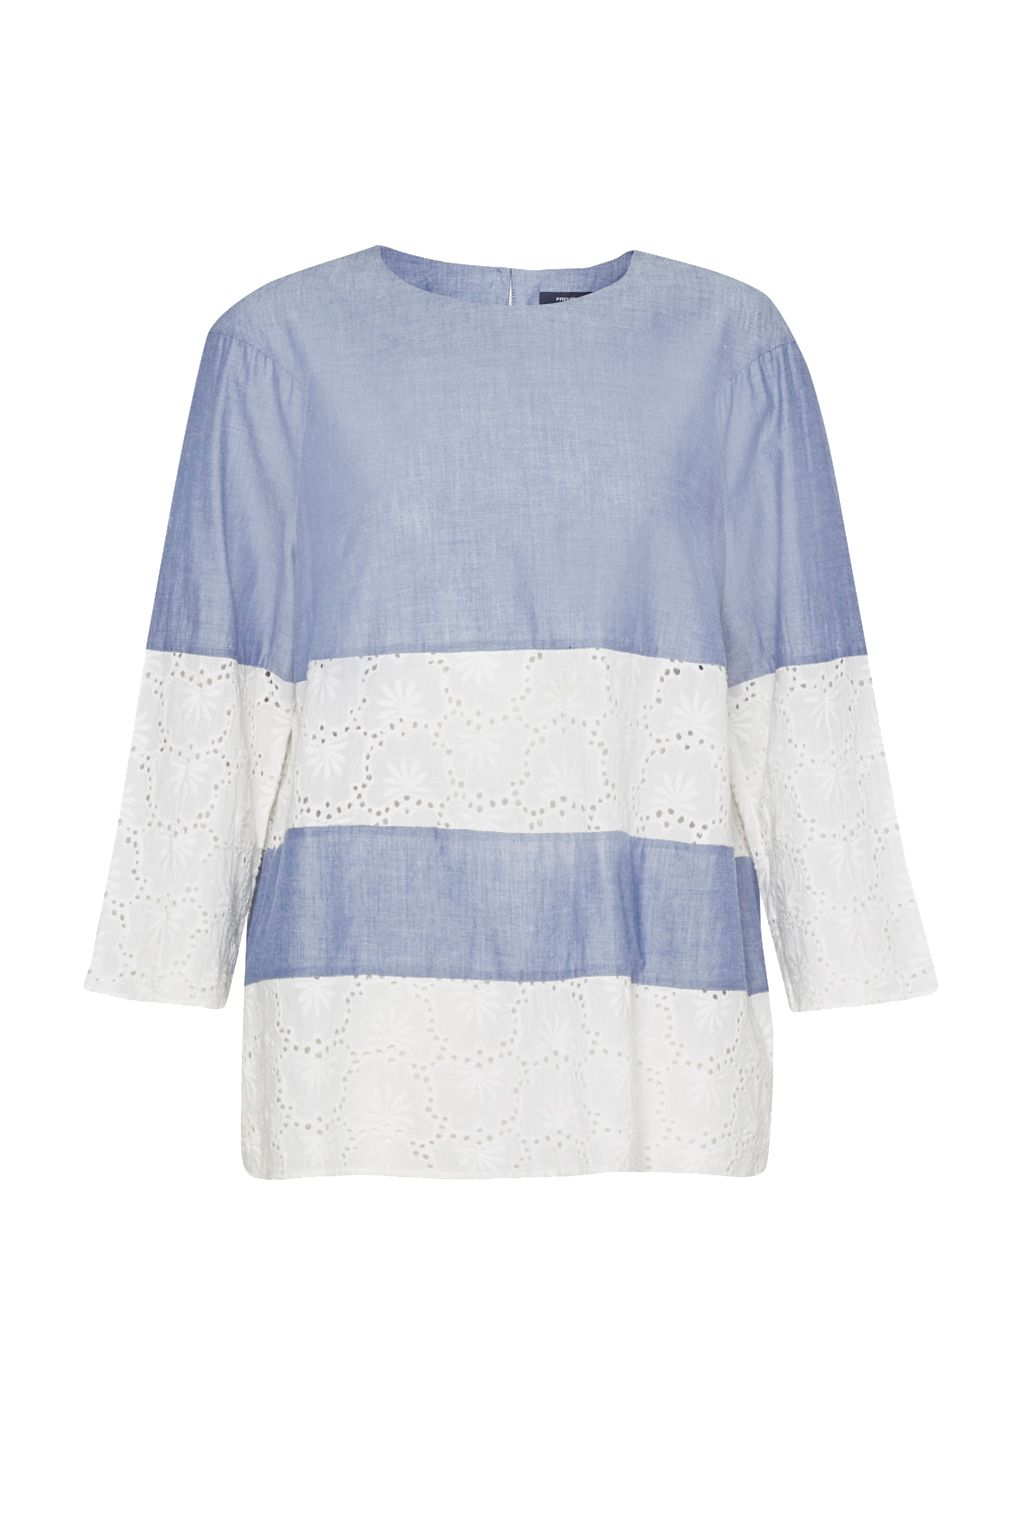 French Connection Kyra Cotton Embroidered Tunic Top, Blue